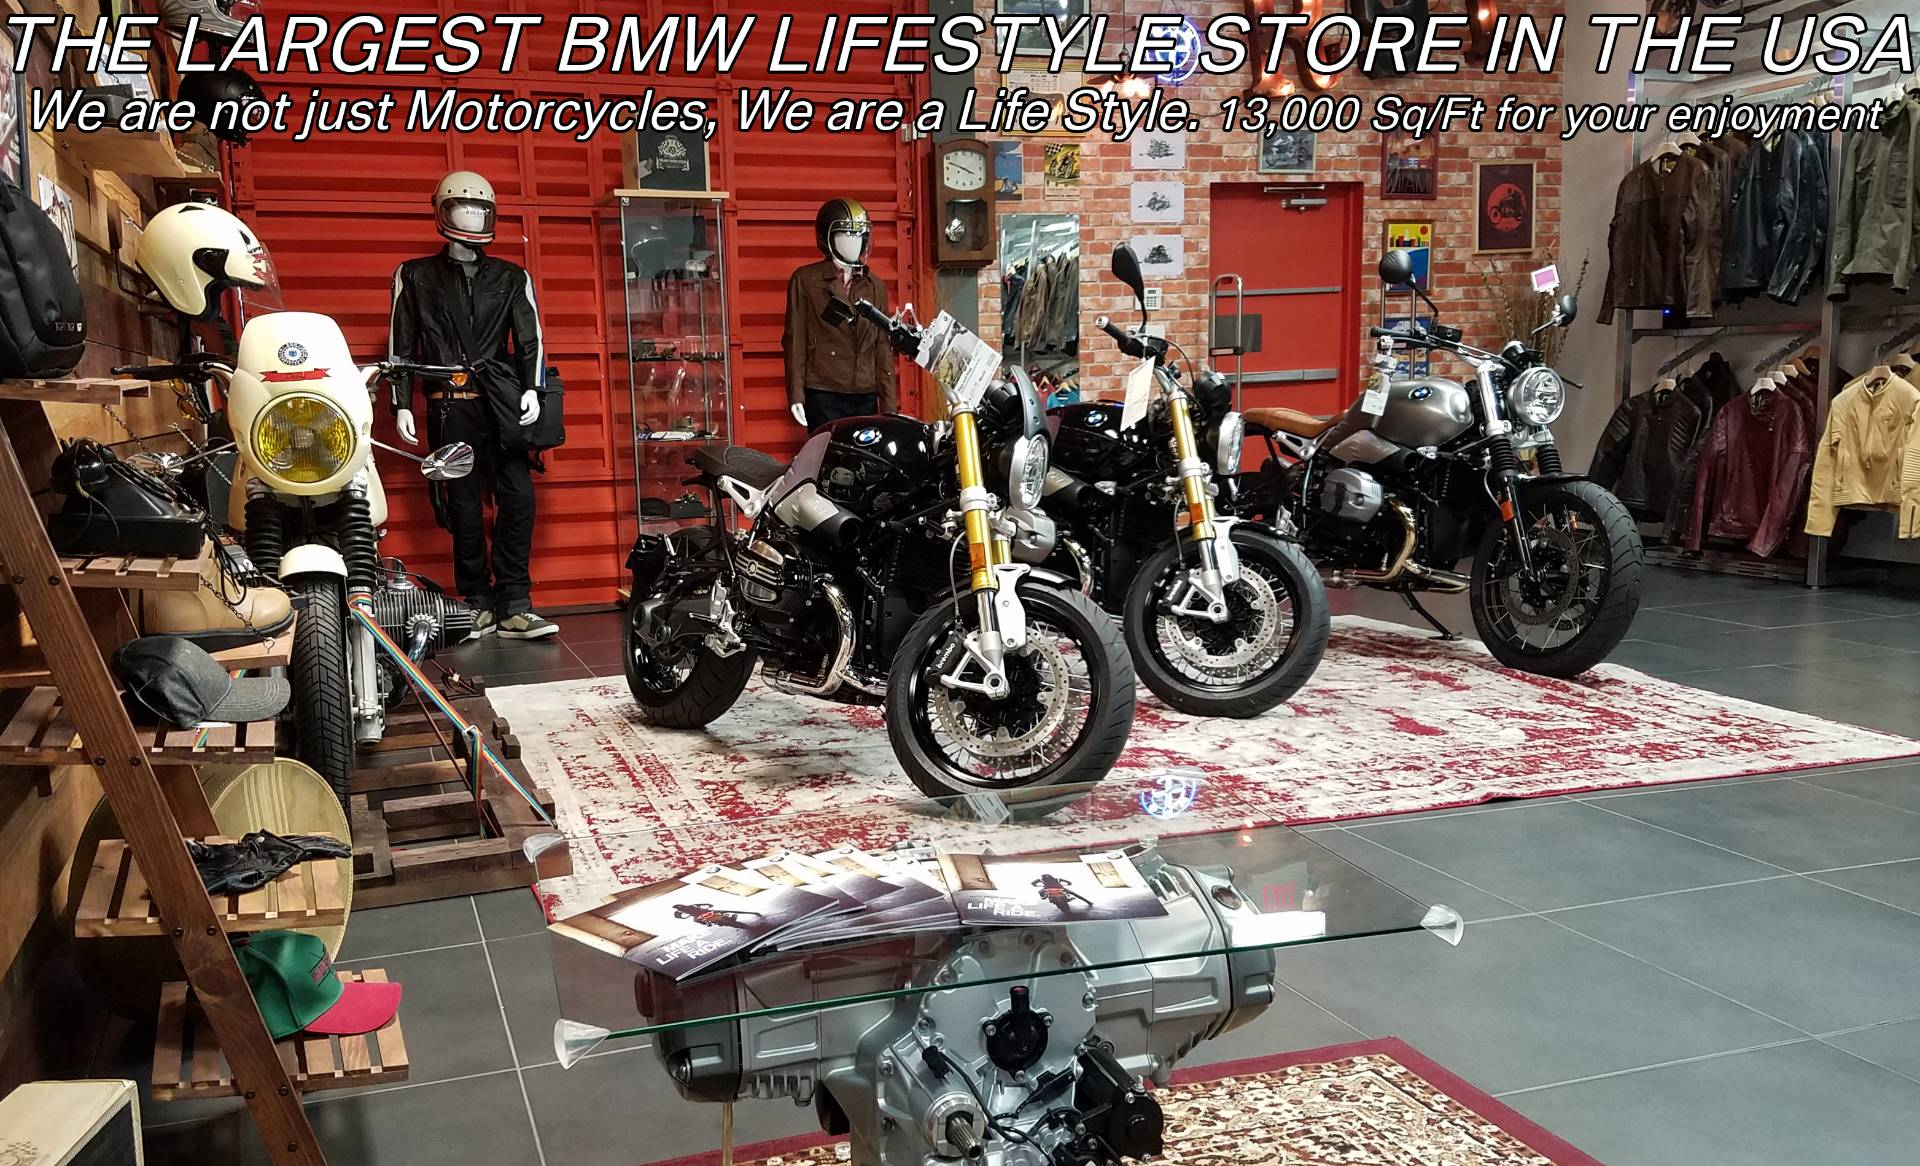 Used 2017 BMW R 1200 GSA for sale, Pre-owned BMW R1200GSA for sale, BMW Motorcycle Adventure, used BMW Adventure triple black, BMW Motorcycles of Miami, Motorcycles of Miami, Motorcycles Miami, New Motorcycles, Used Motorcycles, pre-owned. #BMWMotorcyclesOfMiami #MotorcyclesOfMiami - Photo 31